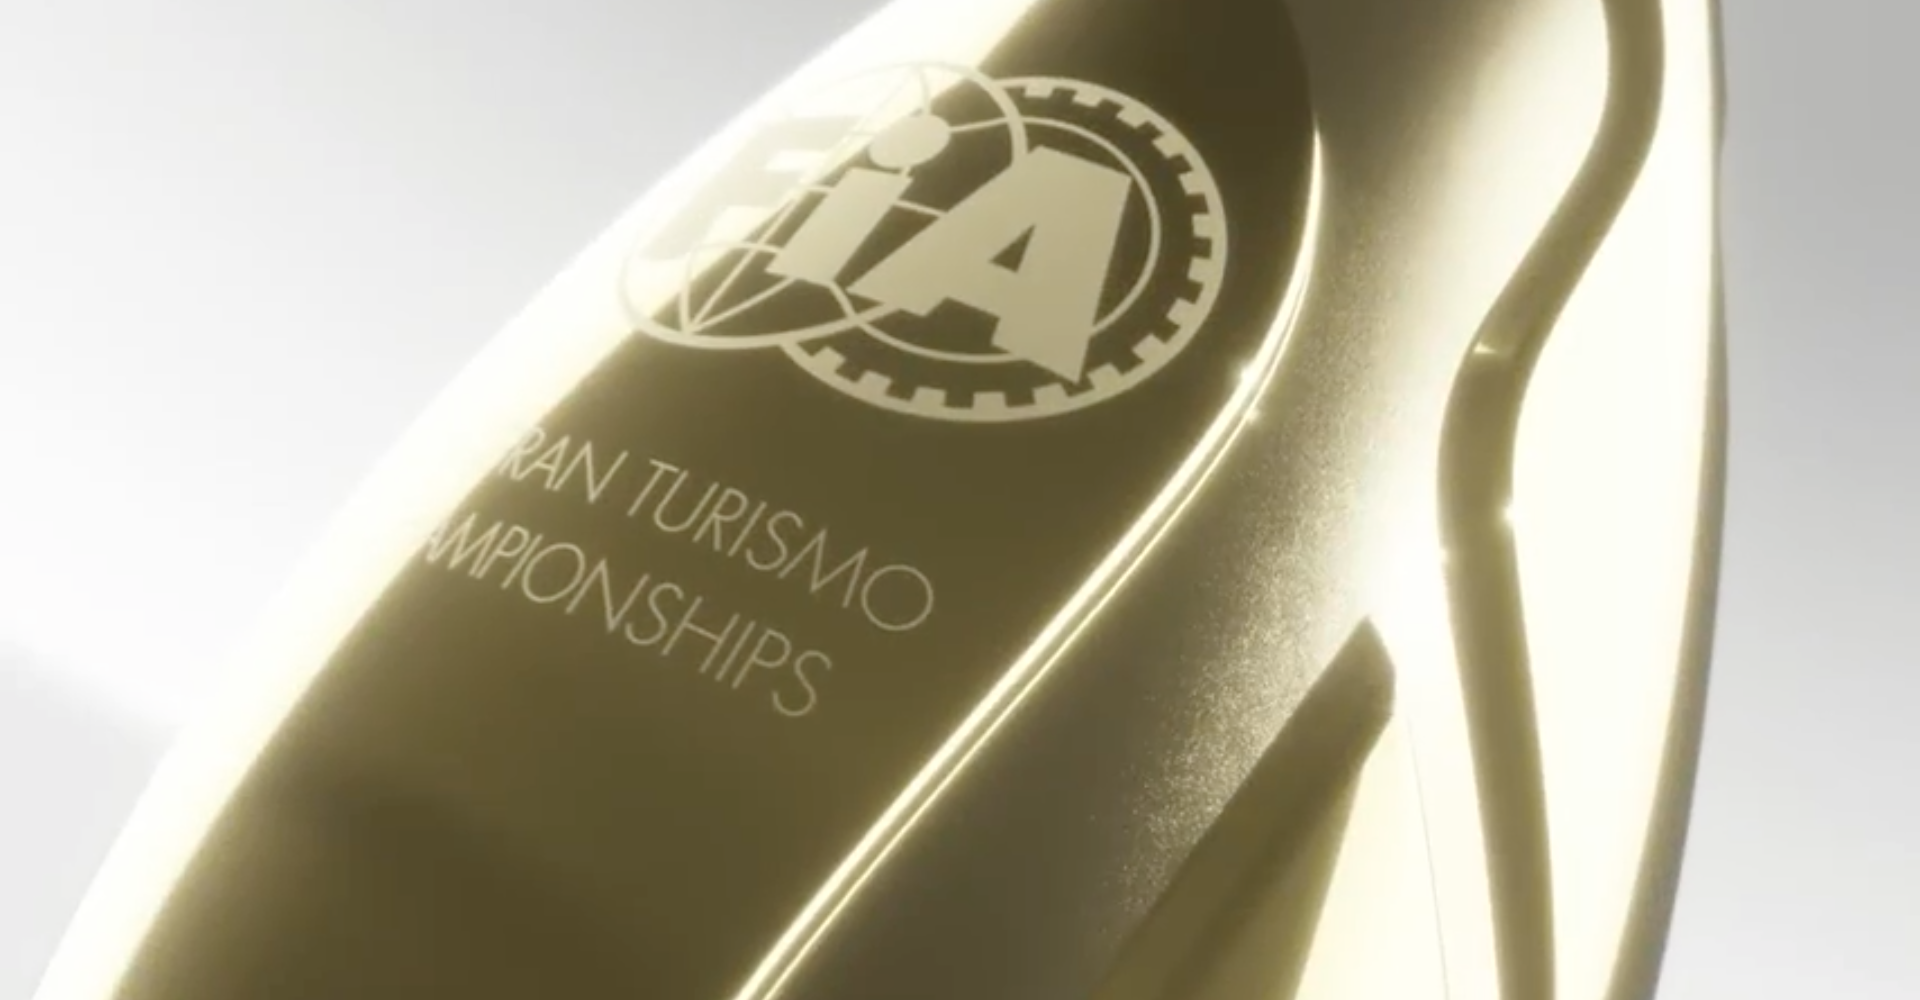 Play Gran Turismo, Get Invited To FIA Awards Dinner